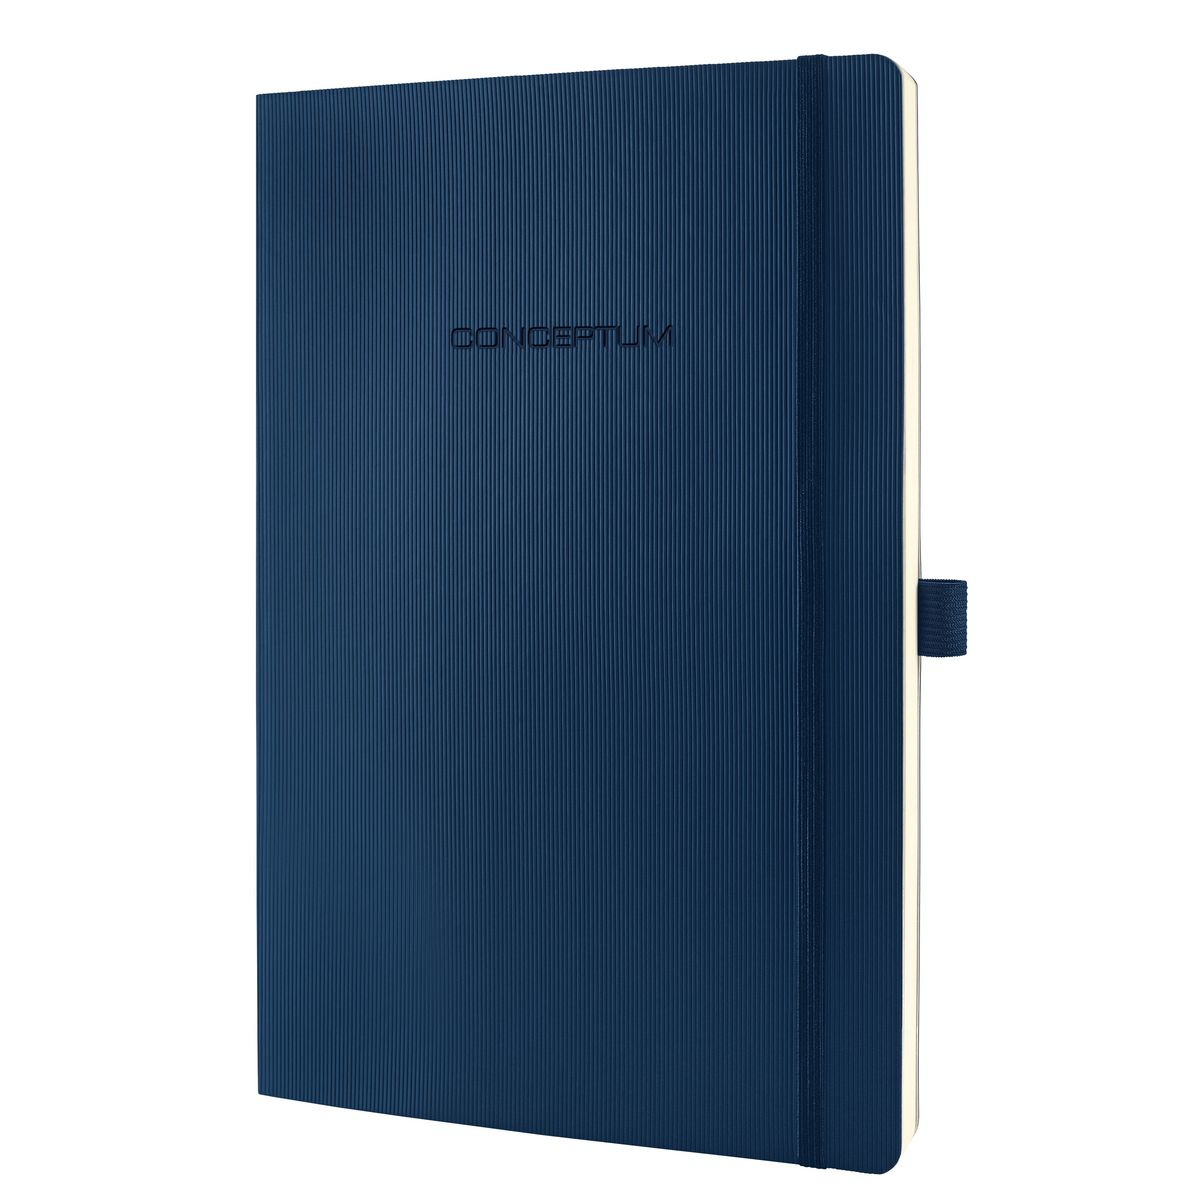 sigel Sigel Conceptum Notebook Softcover Lined 187x270x14mm Blue Co317 - AD01